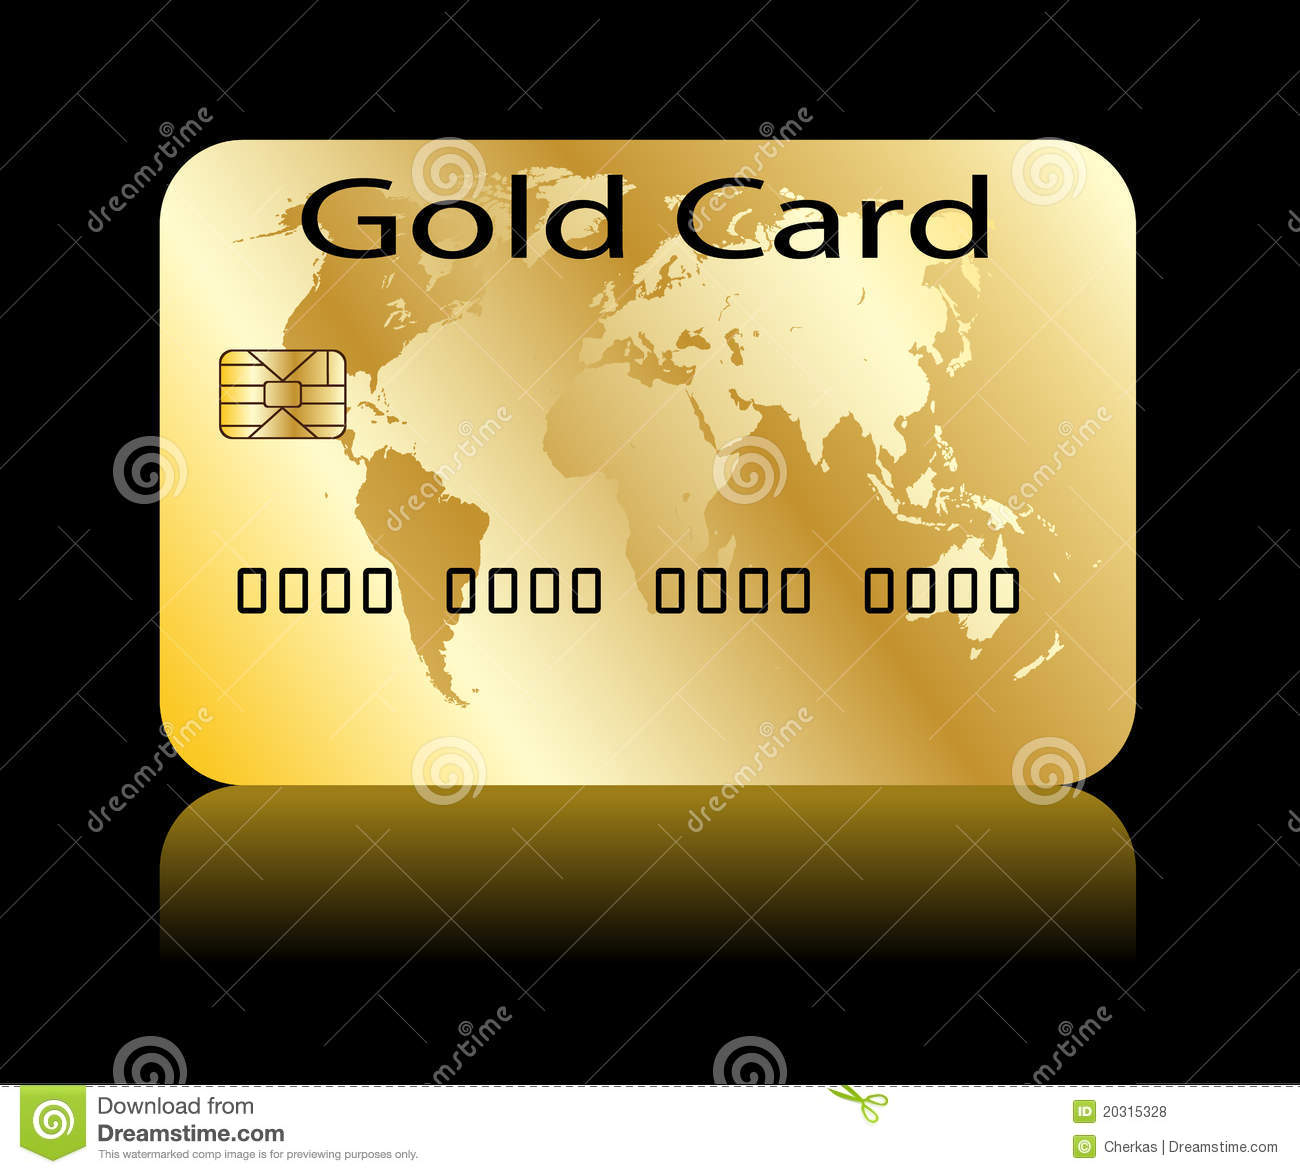 Gold Card Royalty Free Stock Photos Image 20315328